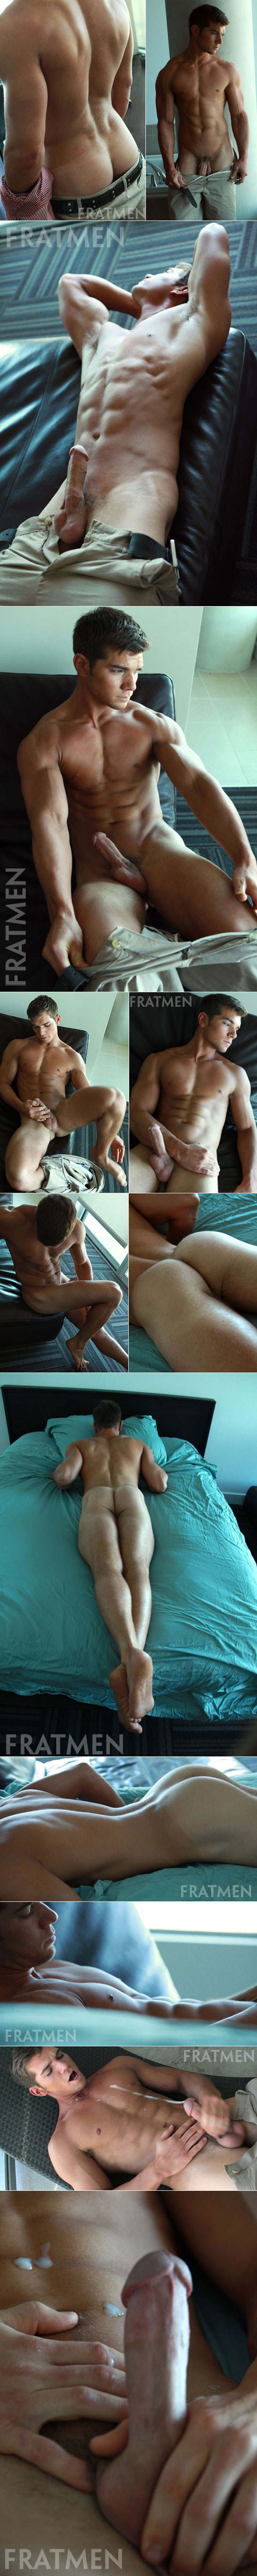 Fratmen.tv: Aiden rubs one out